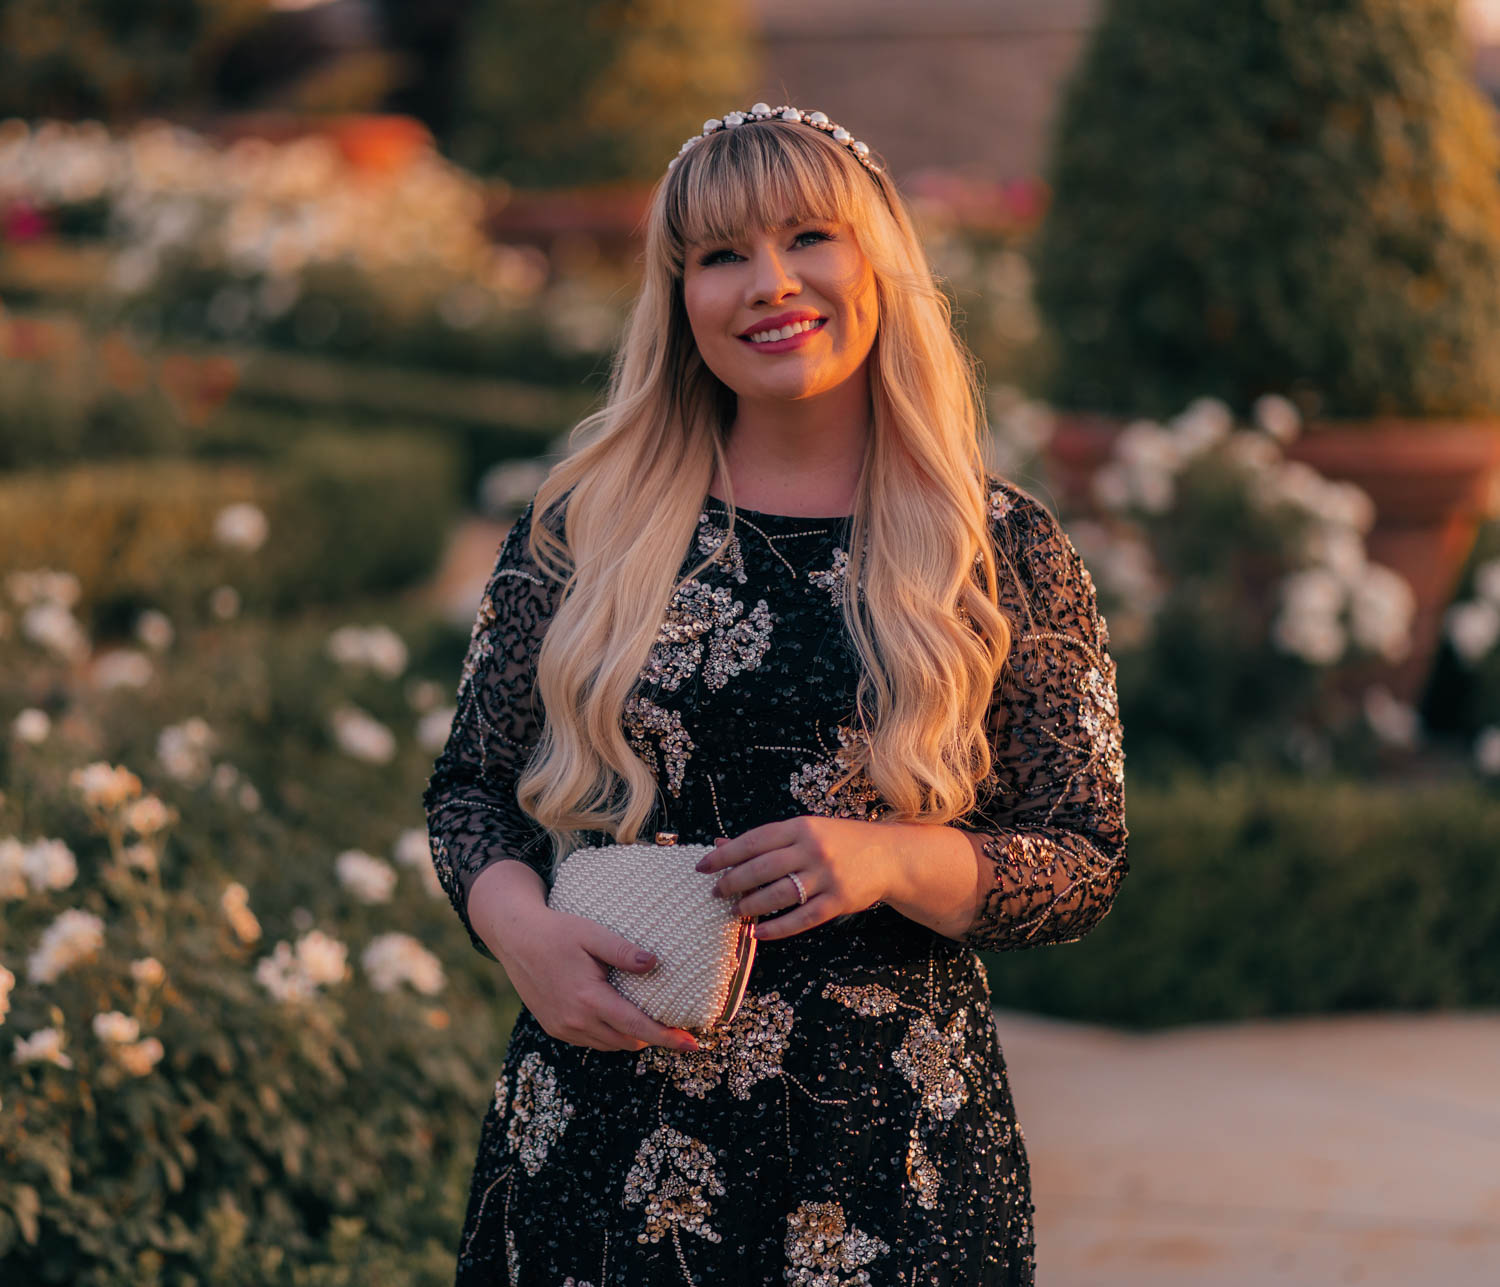 Feminine Fashion Blogger Elizabeth Hugen of Lizzie in Lace style a gorgeous formal dress - a black floral sequin dress from Adrianna Papell - the perfect holiday party dress, wedding guest dress or special occasion dress